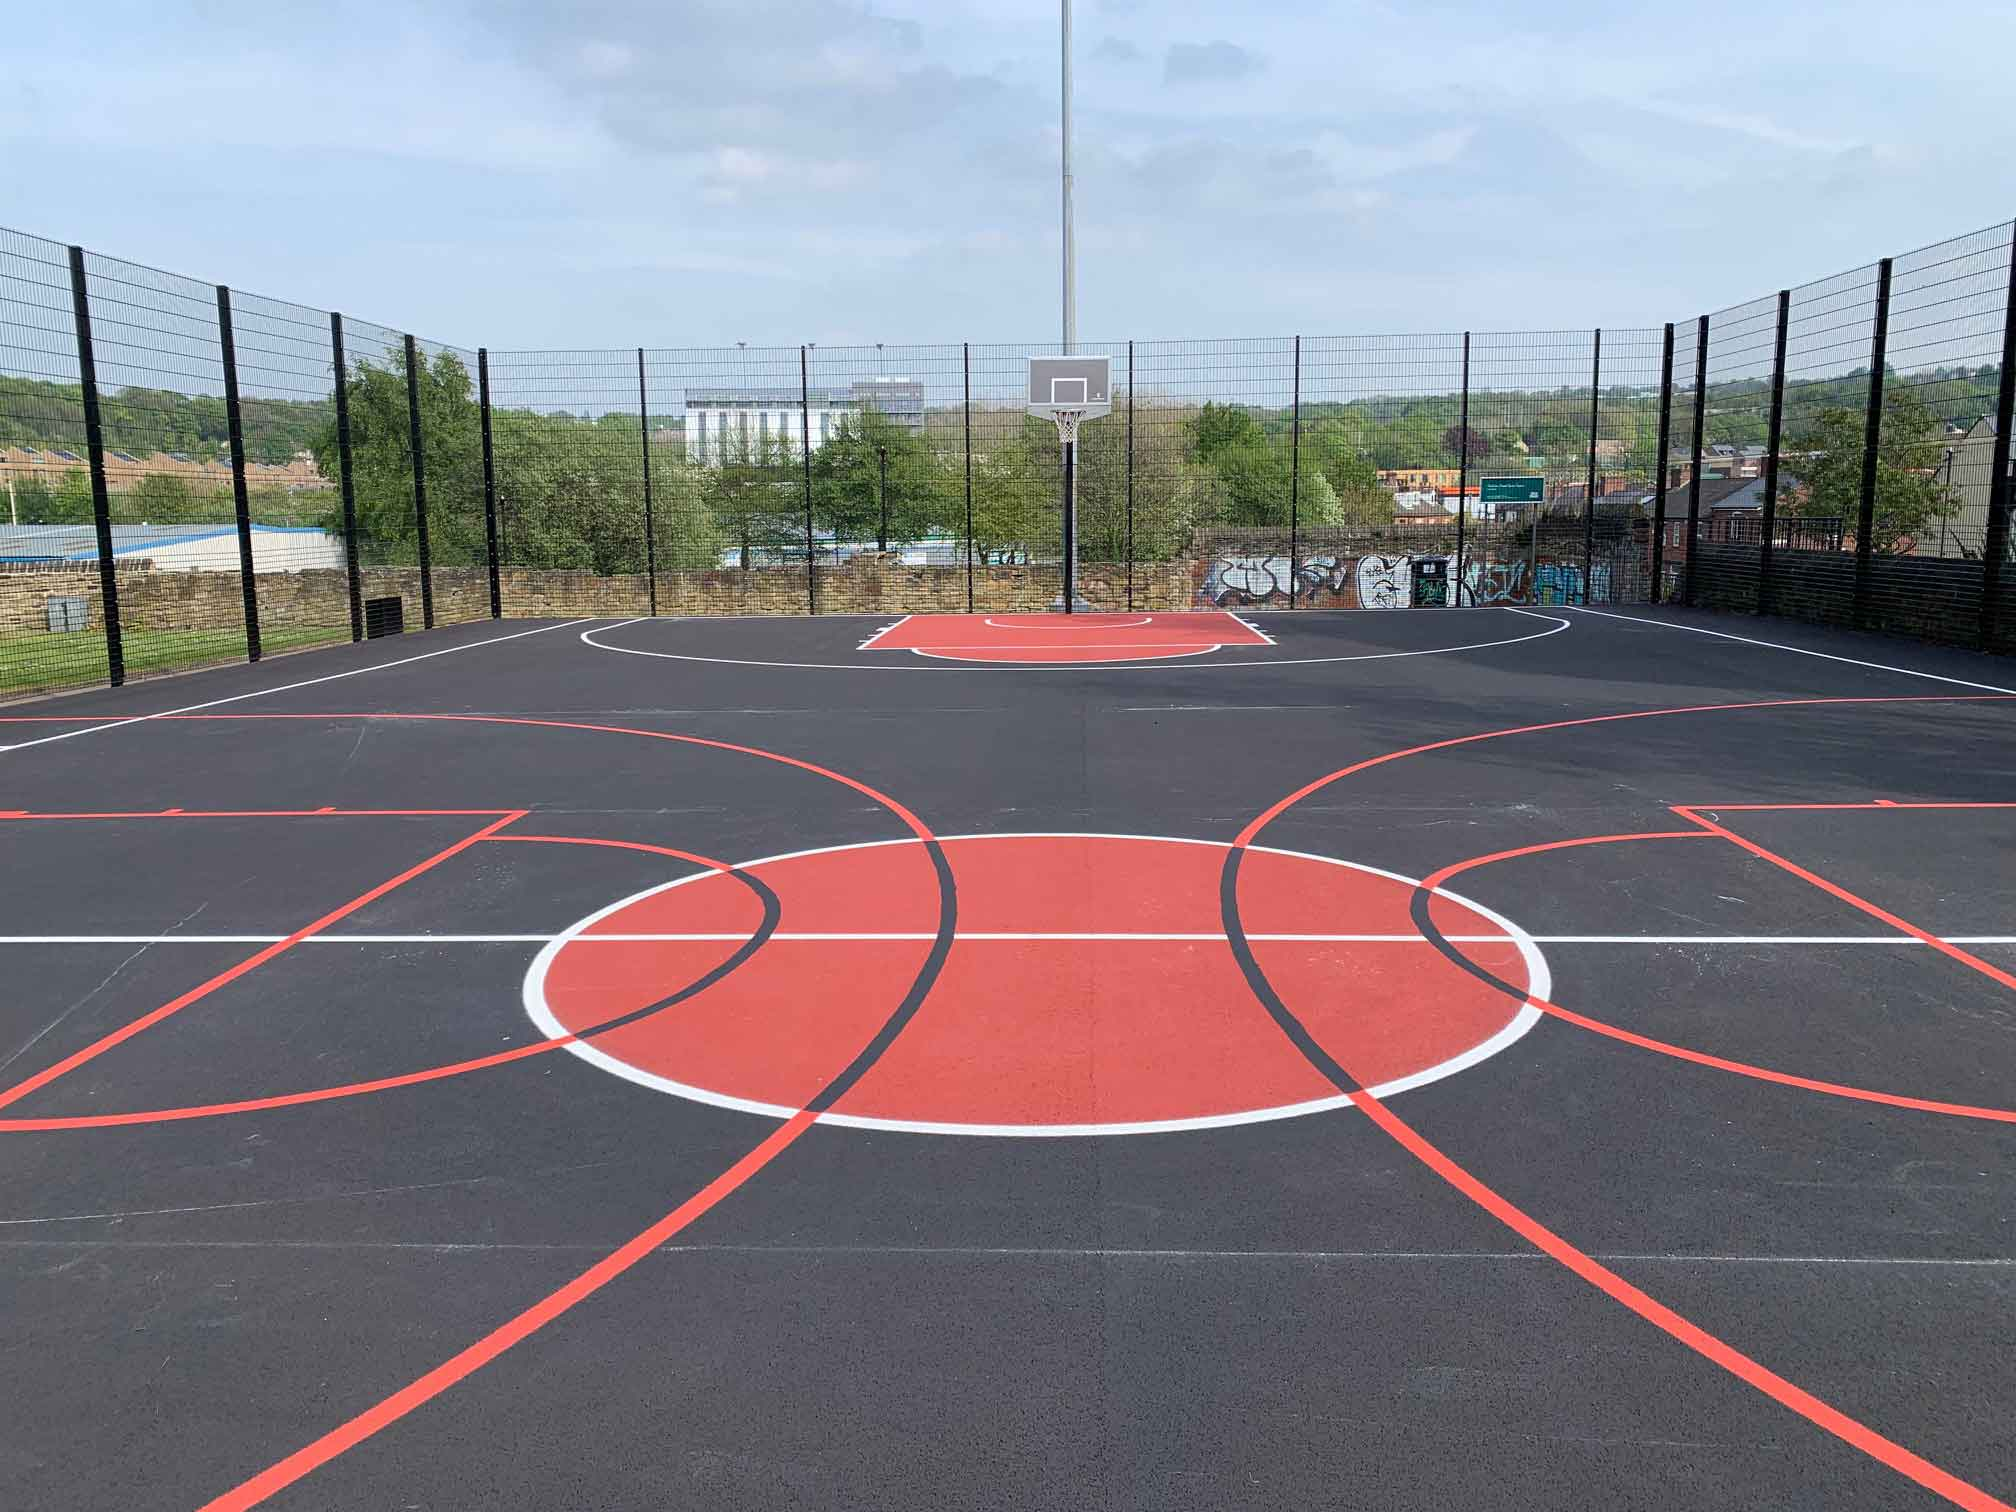 Empty Basketball Court with Basketball Theme Markings